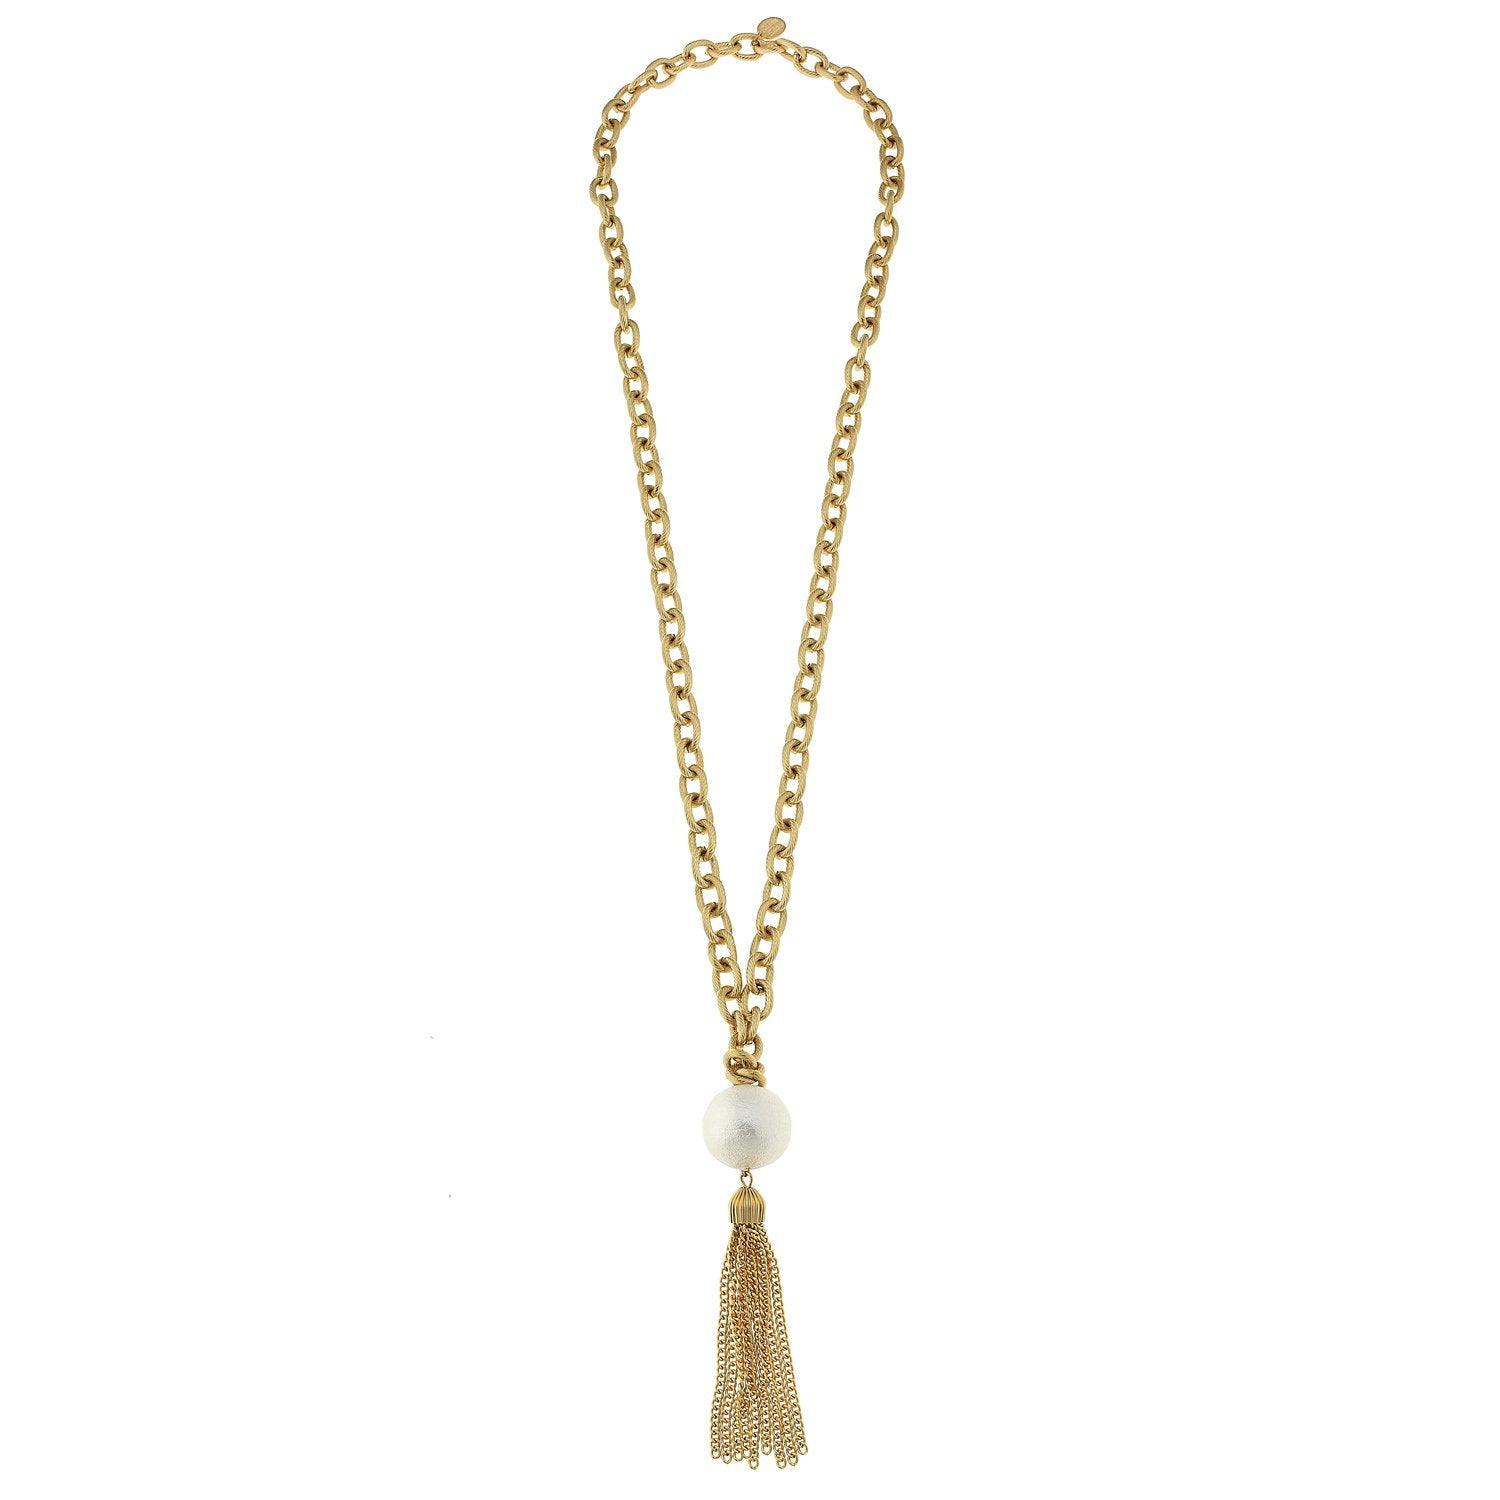 Susan Shaw Handcast Gold with Genuine Cotton Pearl Necklace